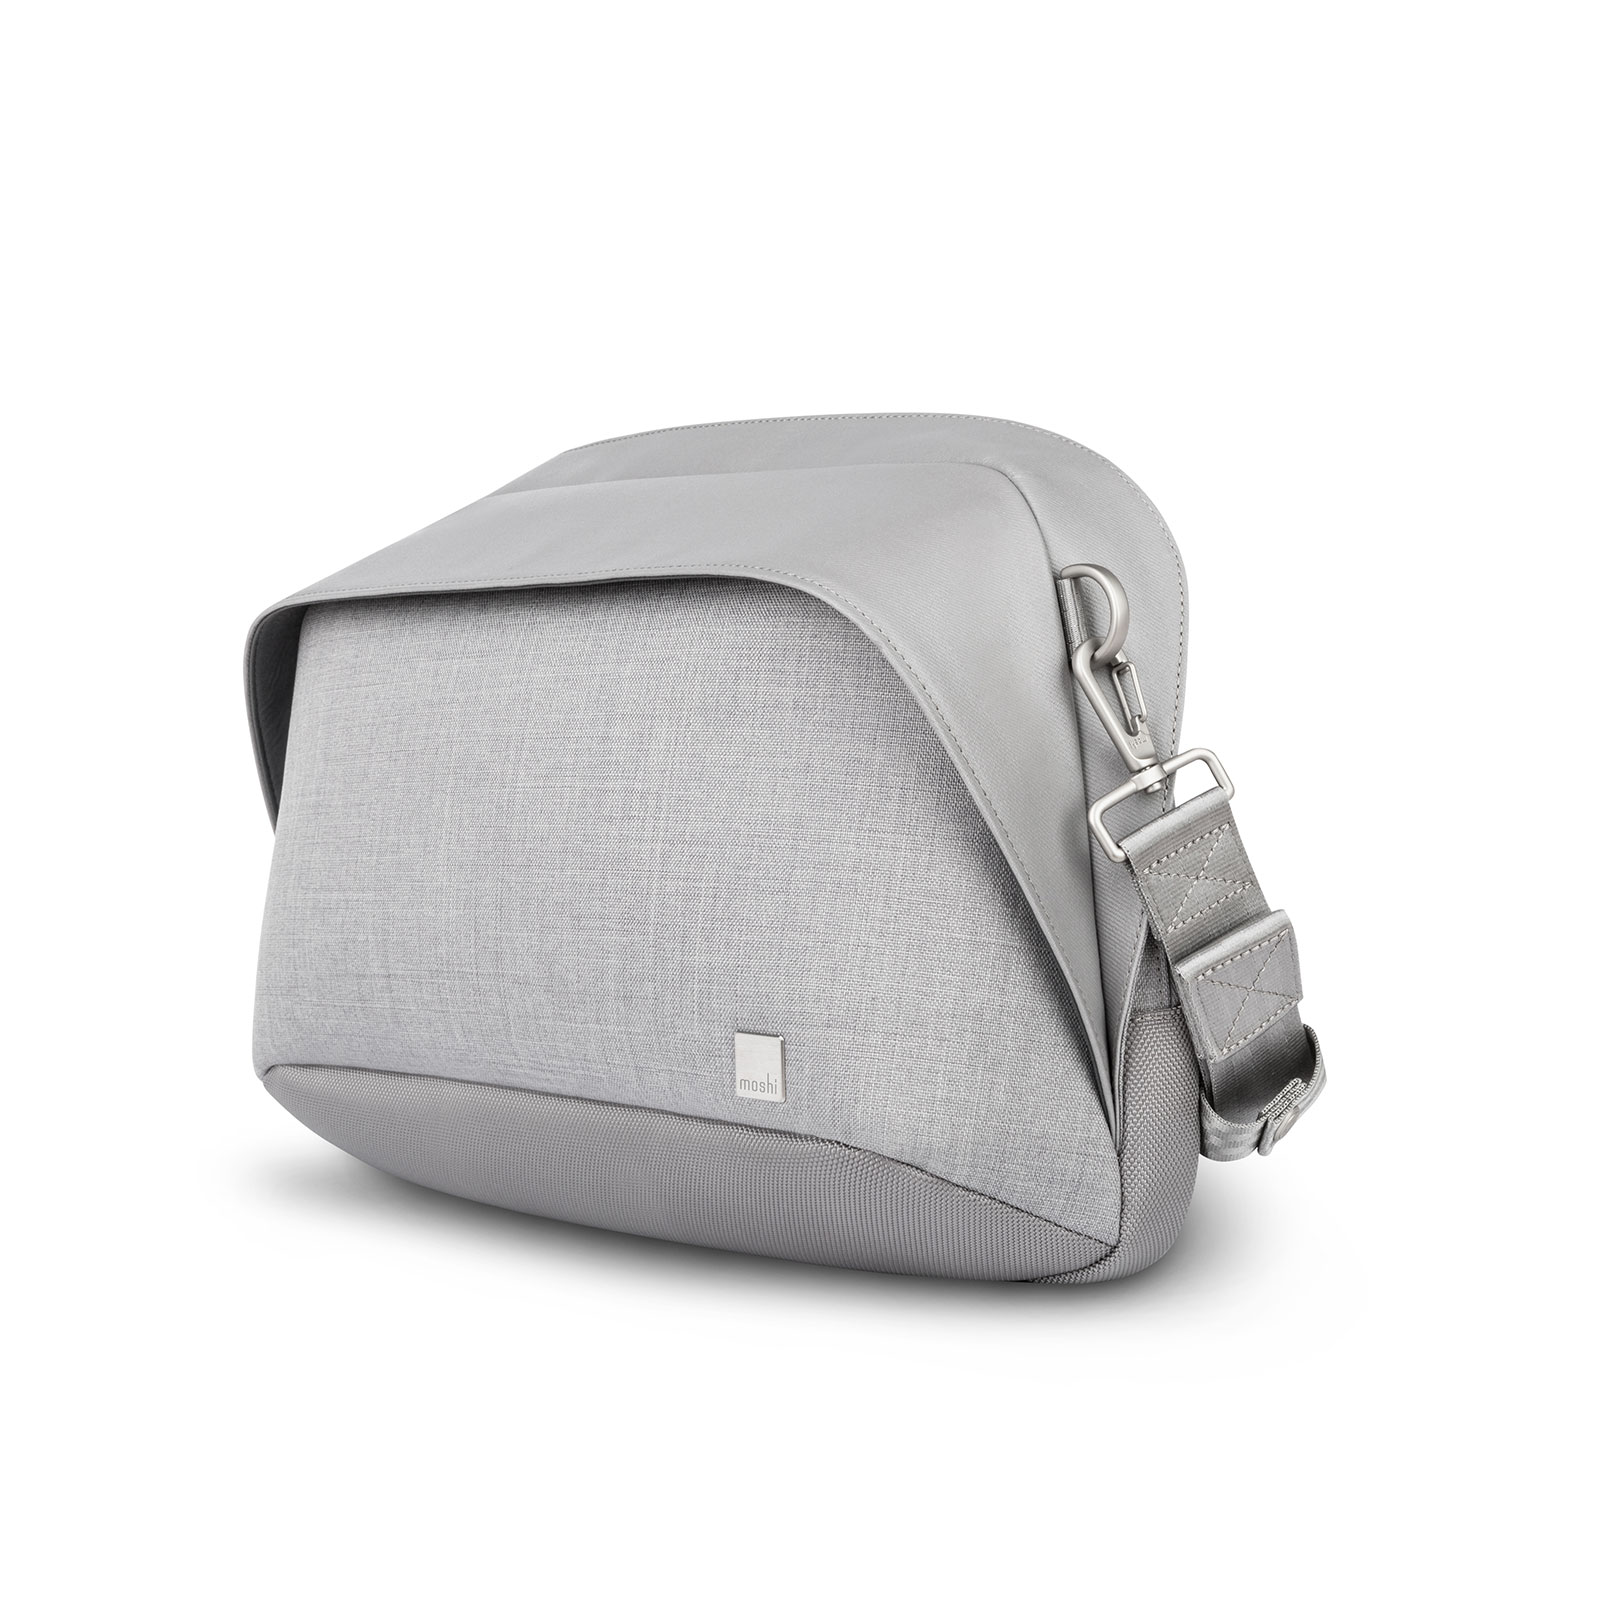 Tego Sling Messenger Bag-image